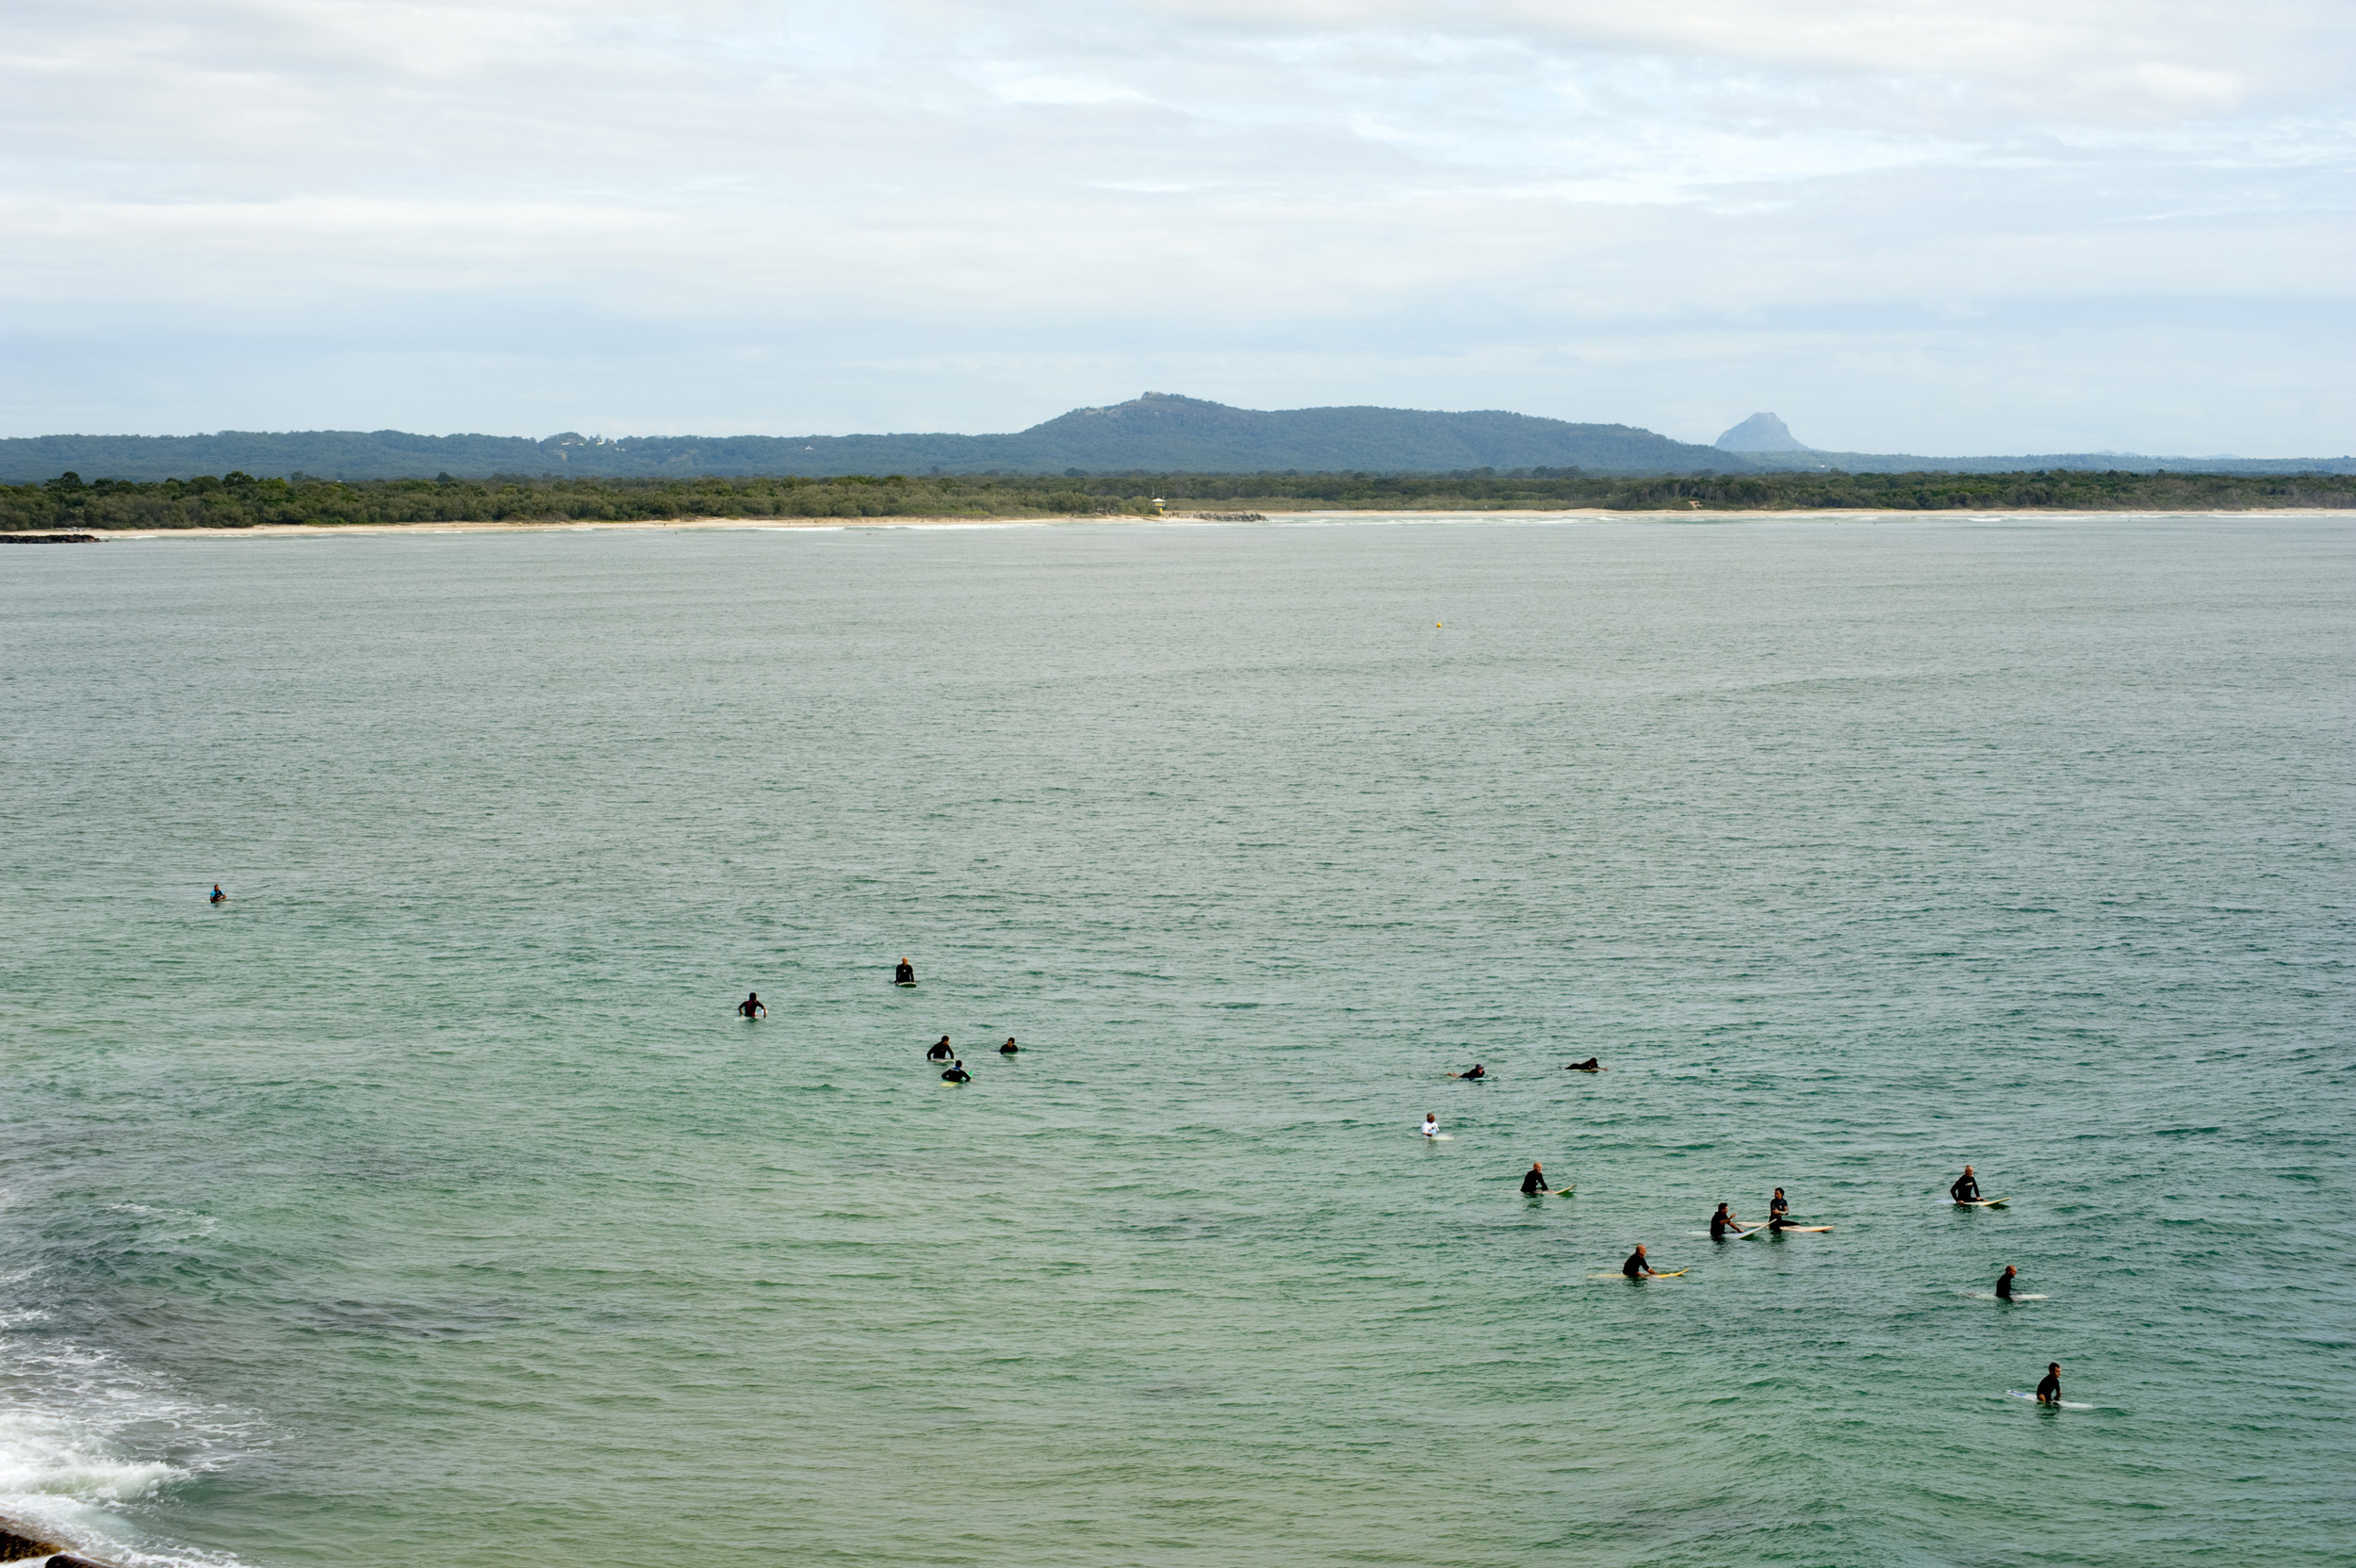 Group of surfers waiting on their boards at sea for a suitable wave off the beach at Noosa Beach in Queensland, Australia